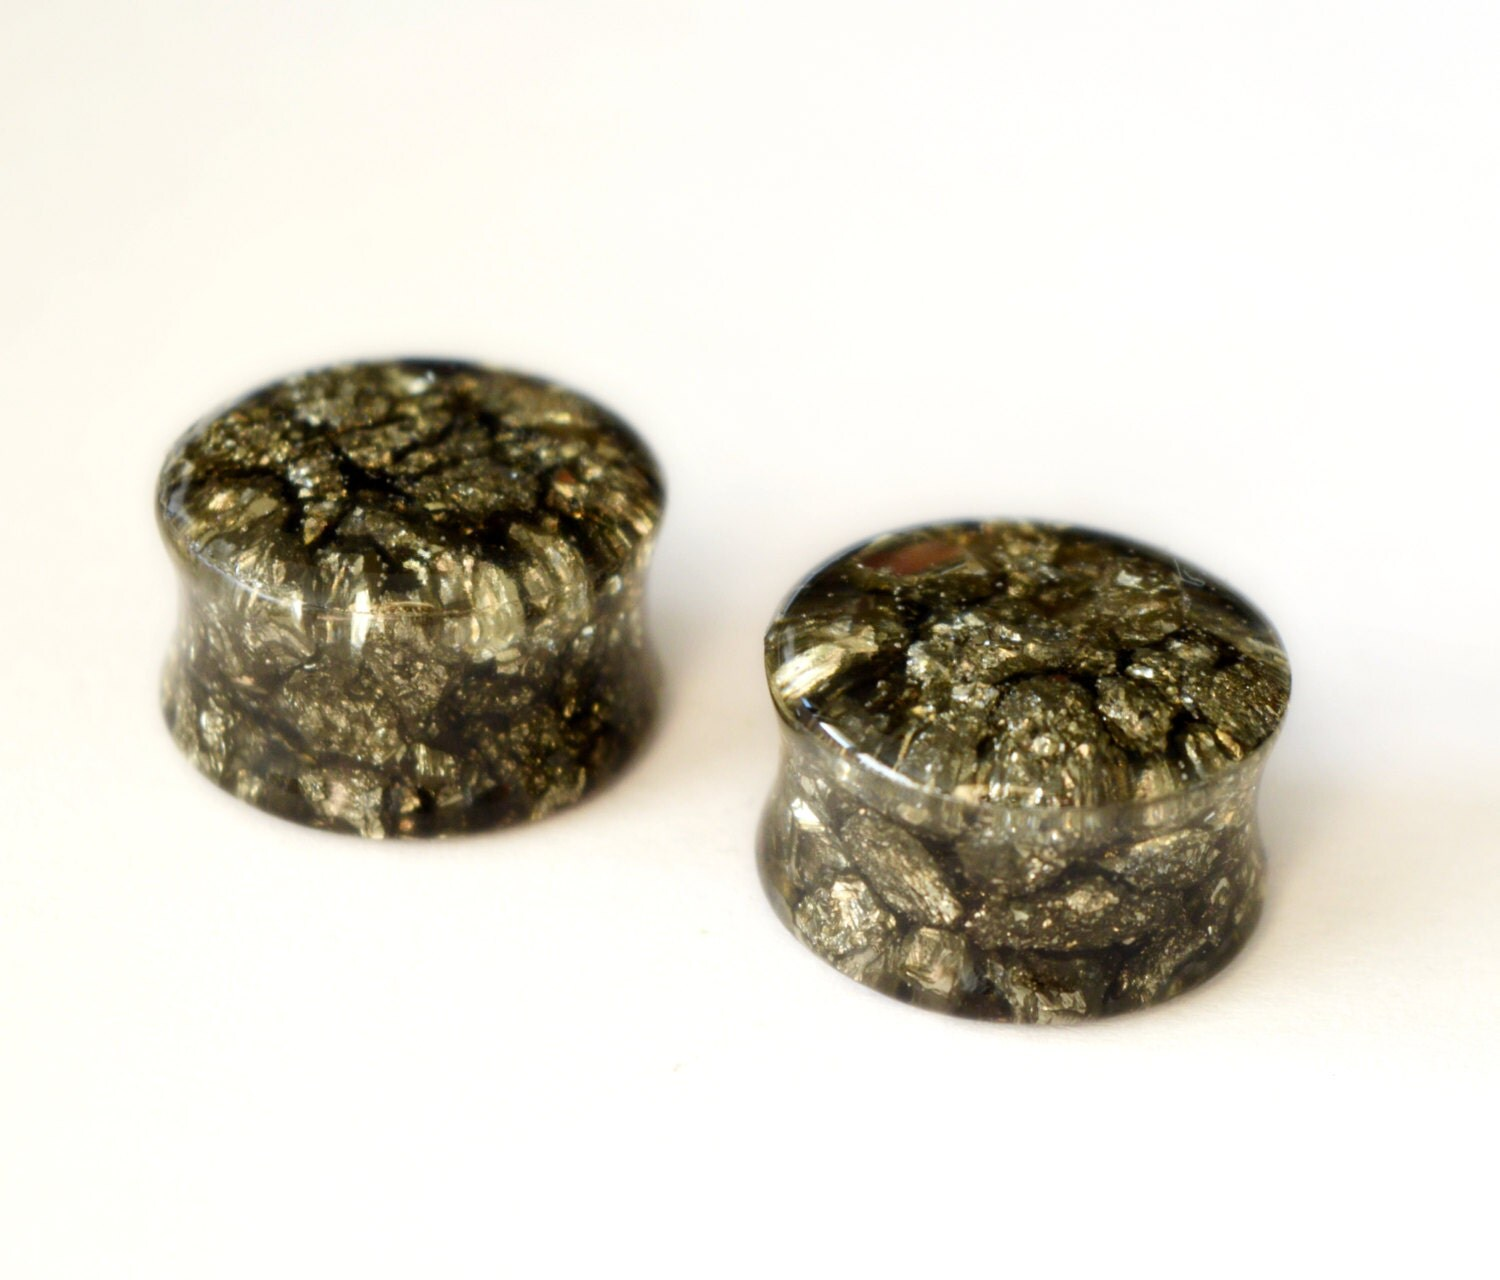 pyrite plugs stone plugs gauge earrings double flare plugs